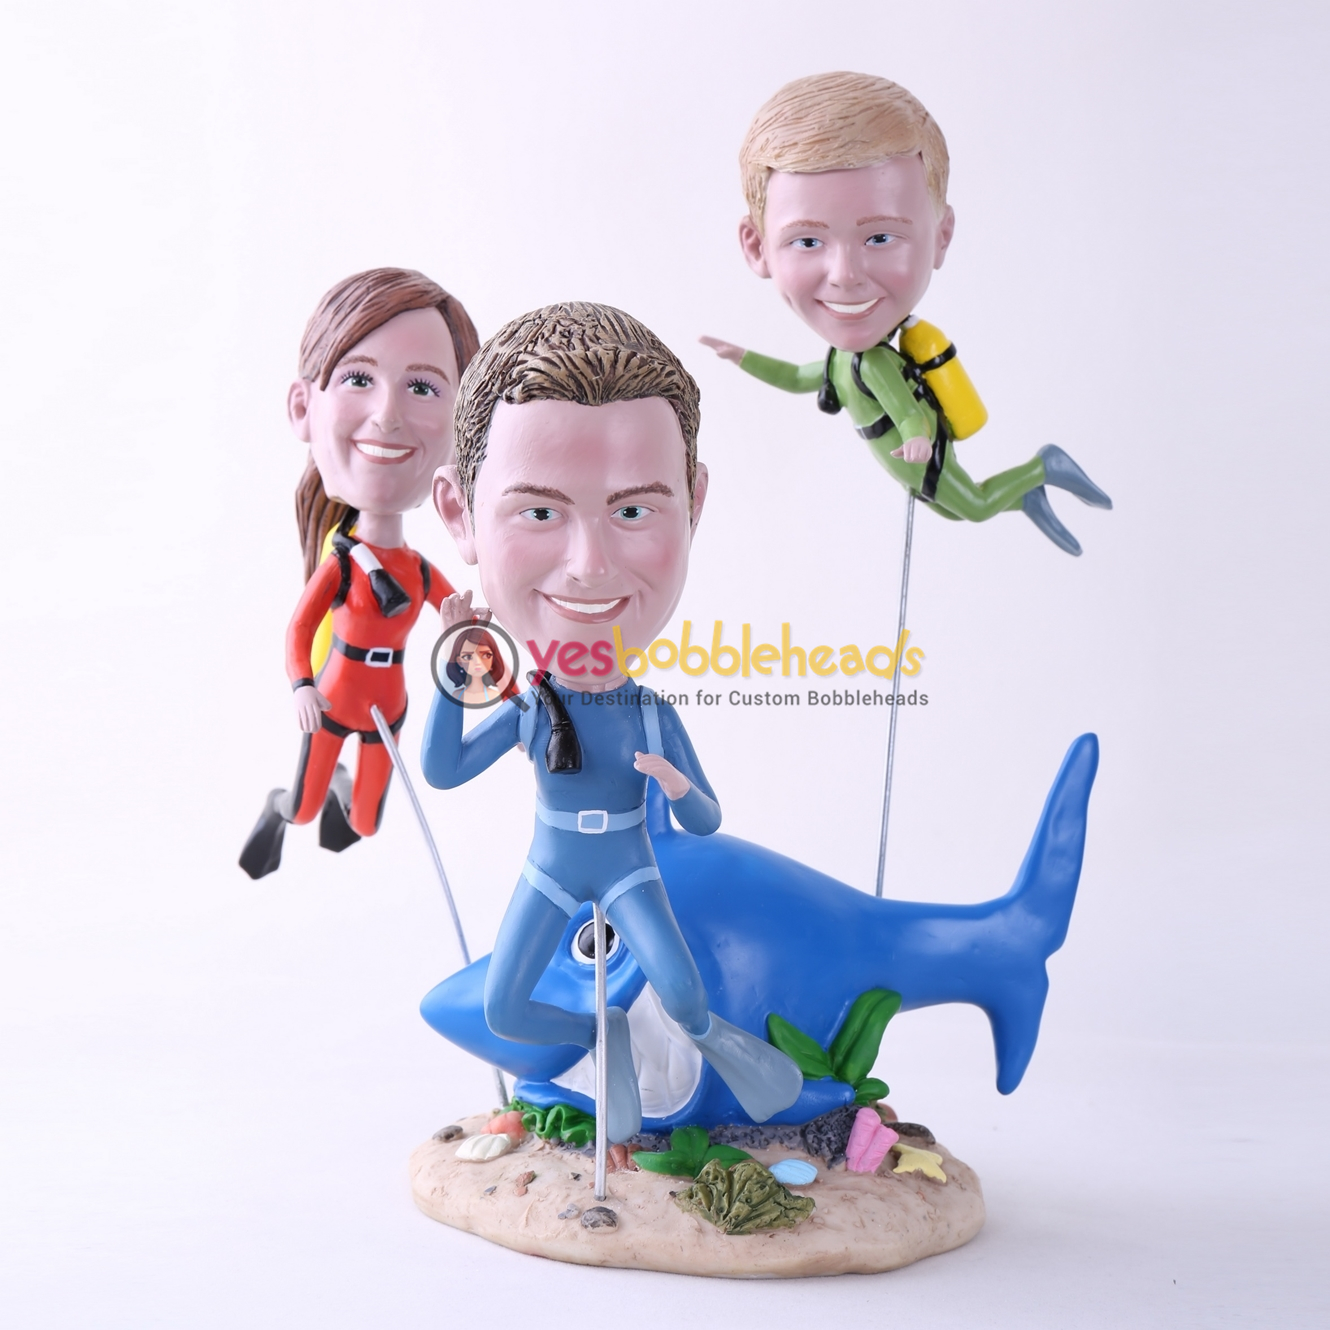 Picture of Custom Bobblehead Doll: Scuba Diving Family